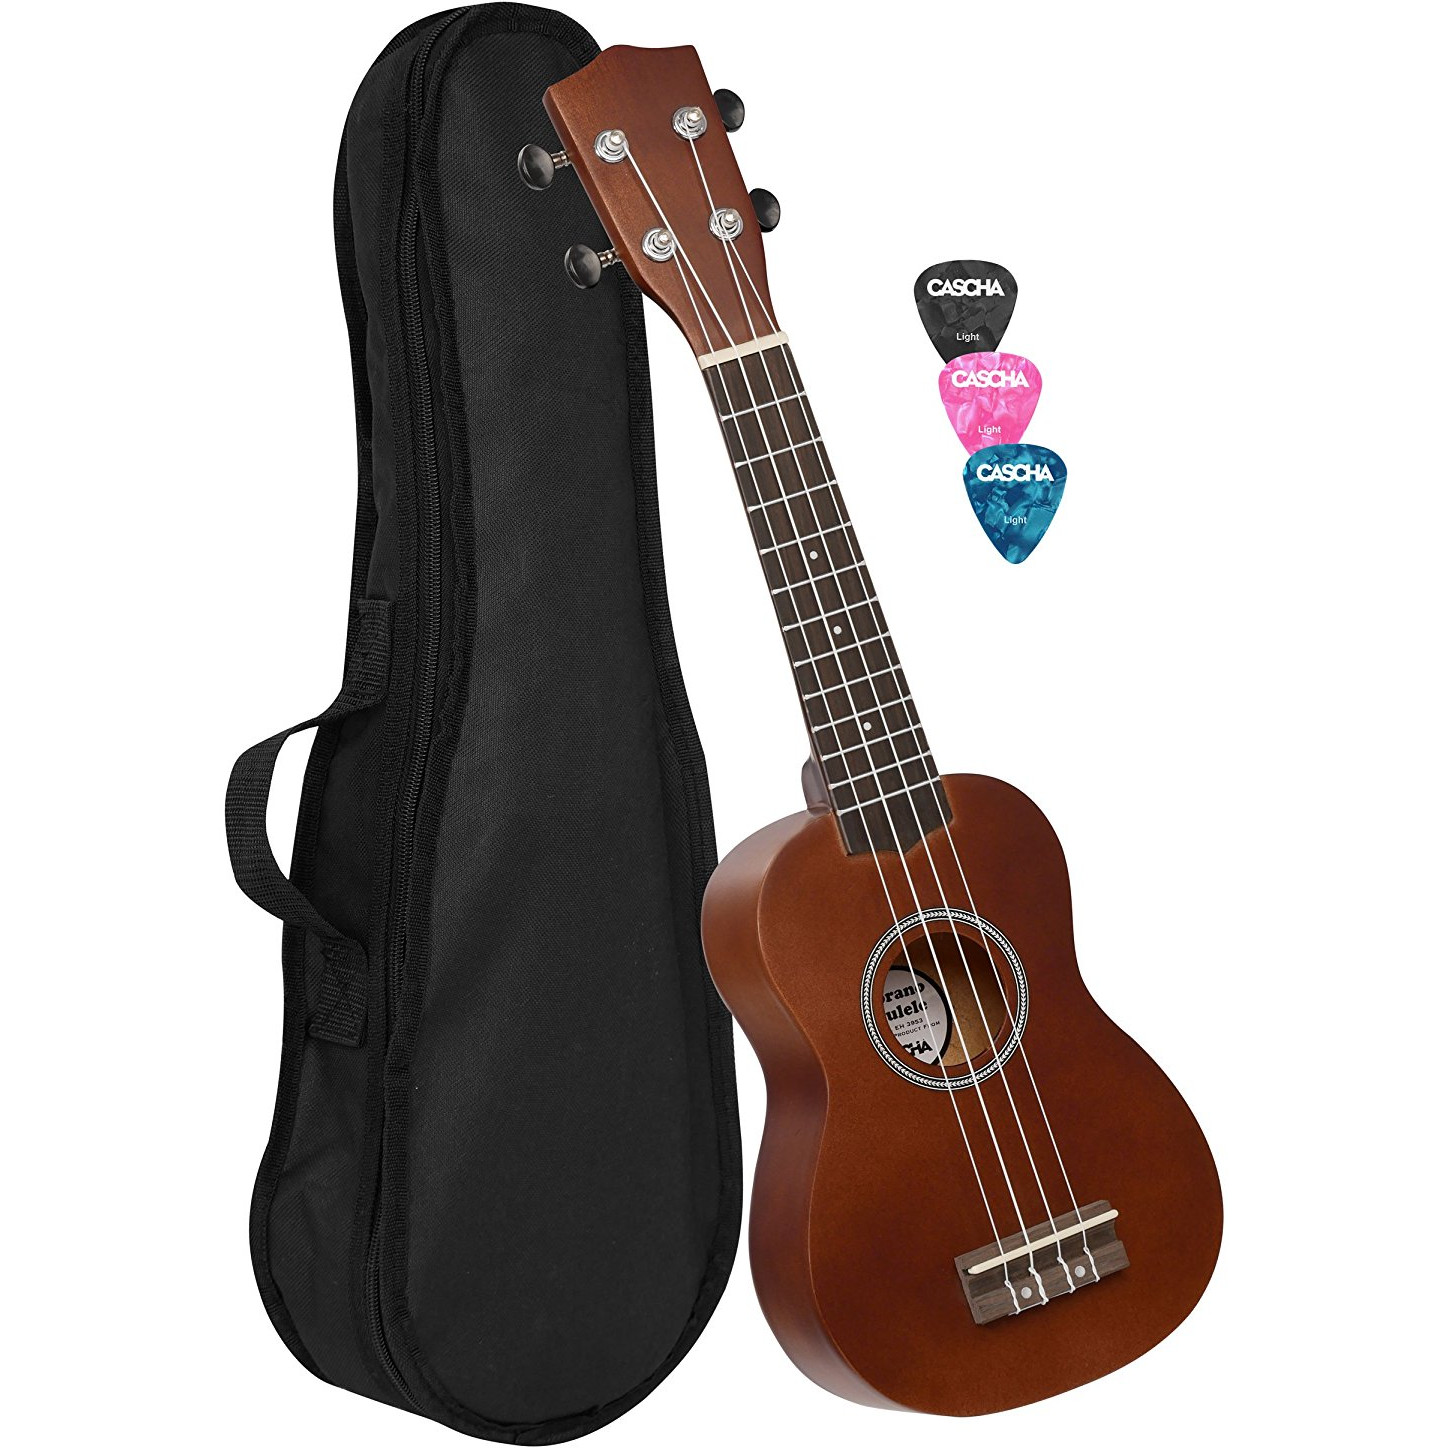 Cascha EH 3953 soprano ukulele with bag and plectrums